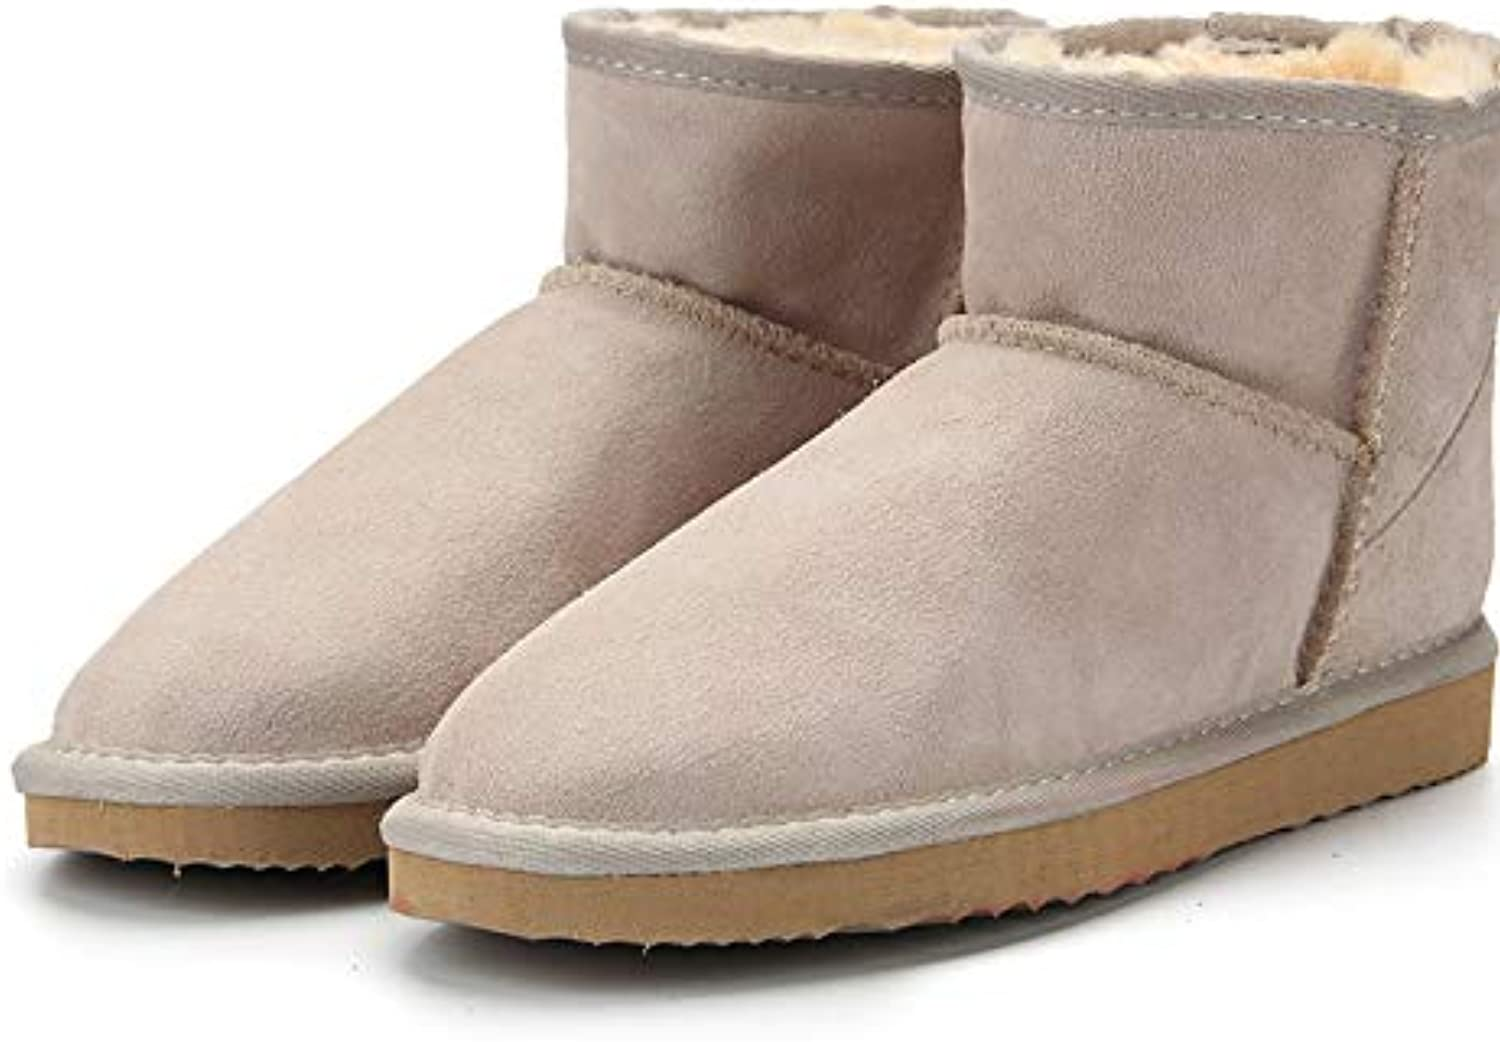 Fumak Genuine Leather Australia Classic 100% Wool Snow Boots Women Boots Warm Winter shoes for Women US 3-13